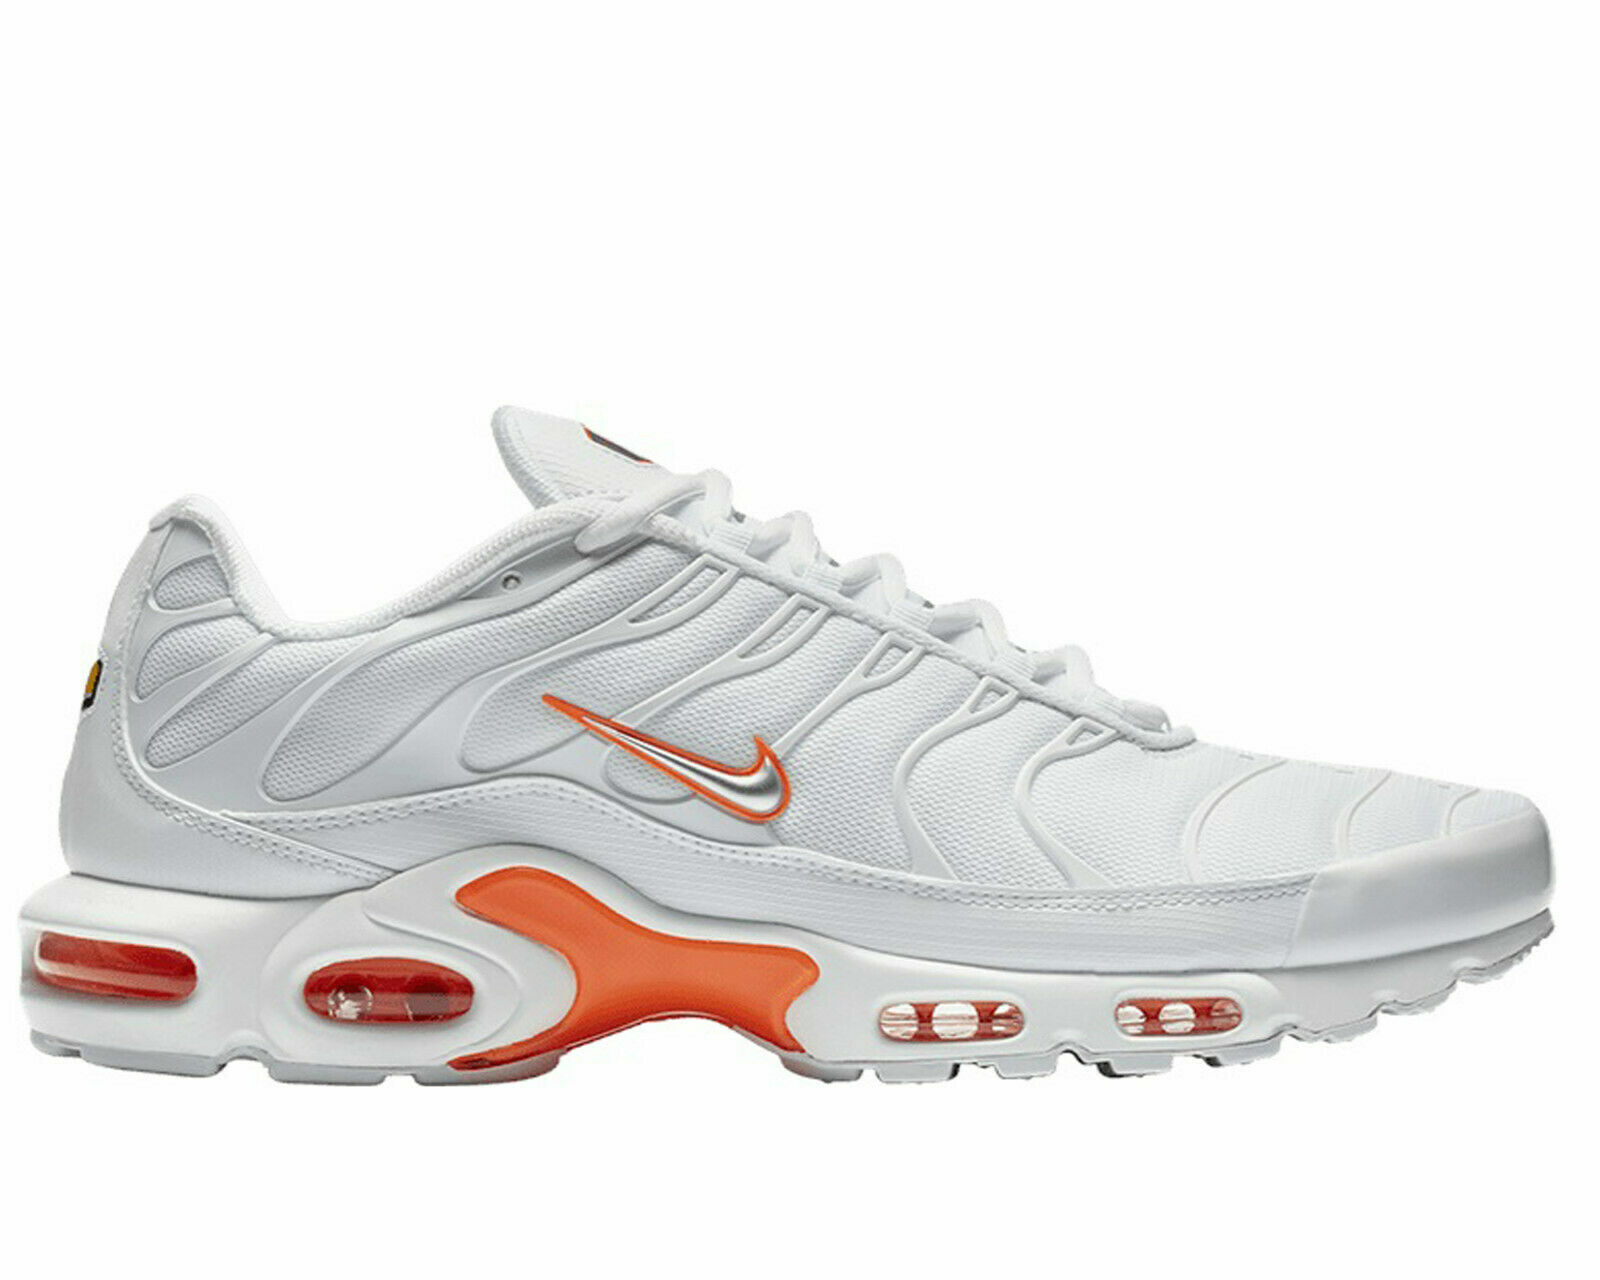 Air Max Classic Original Nike Air Max Plus Se Tuned 1 Tn Trainers White Silver Orange Ao9564 100